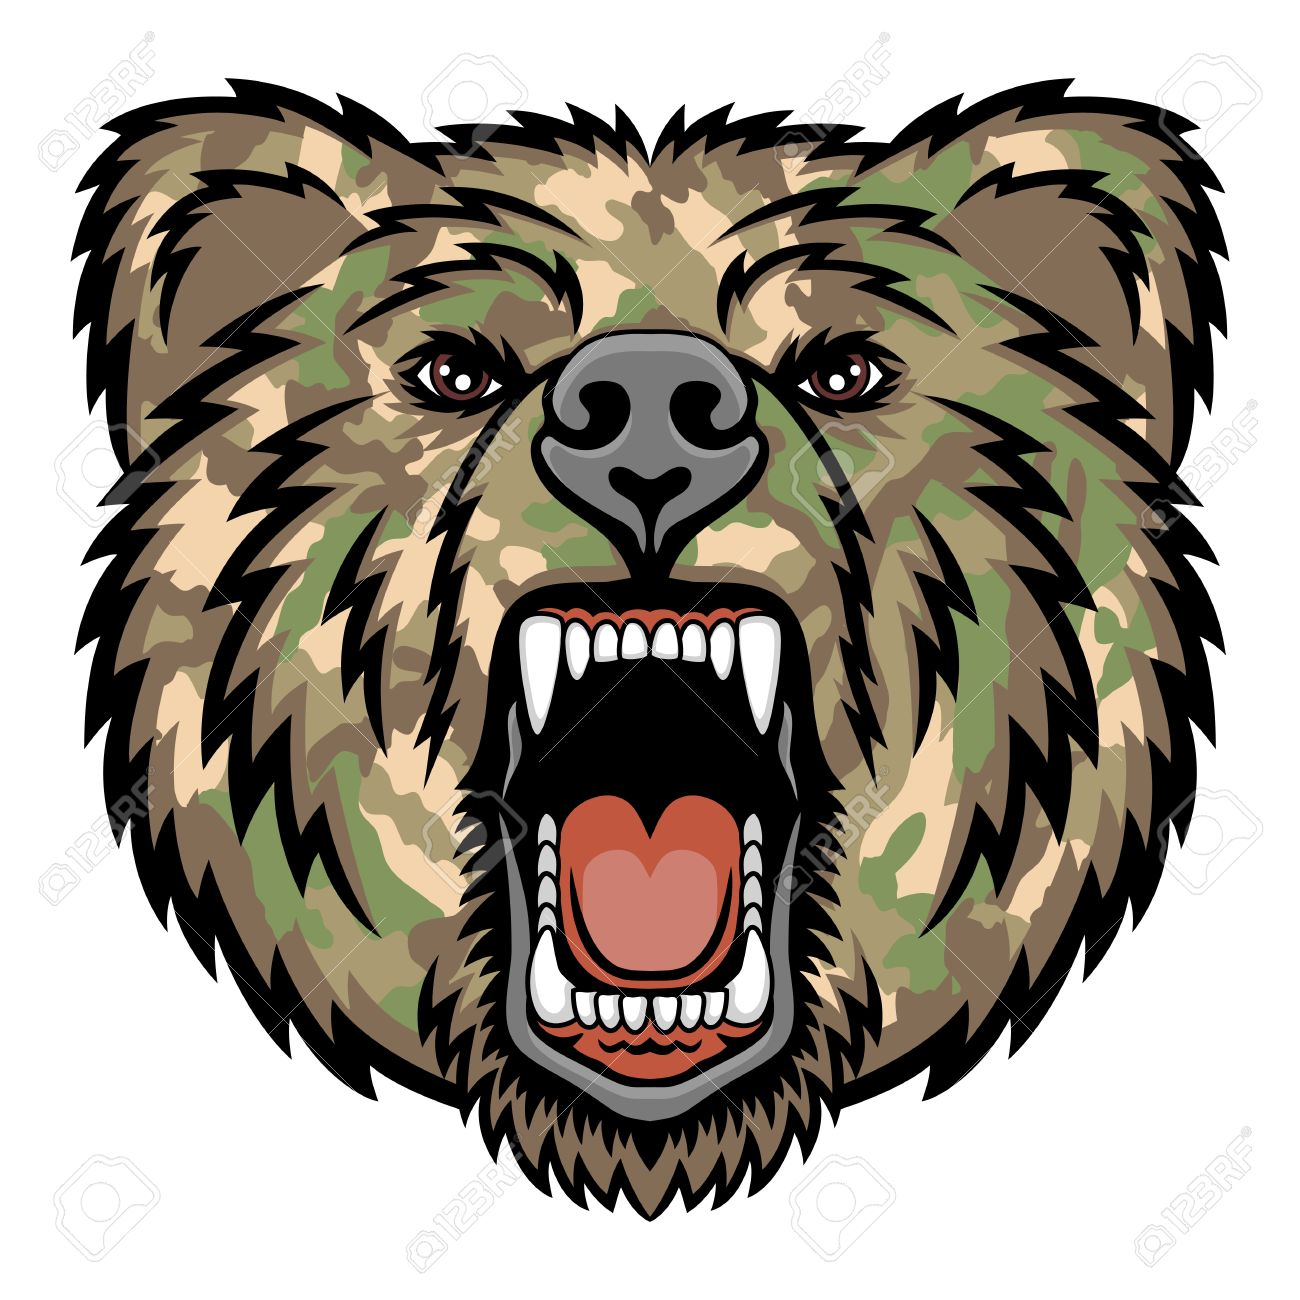 a bear head logo military style this is illustration ideal royalty